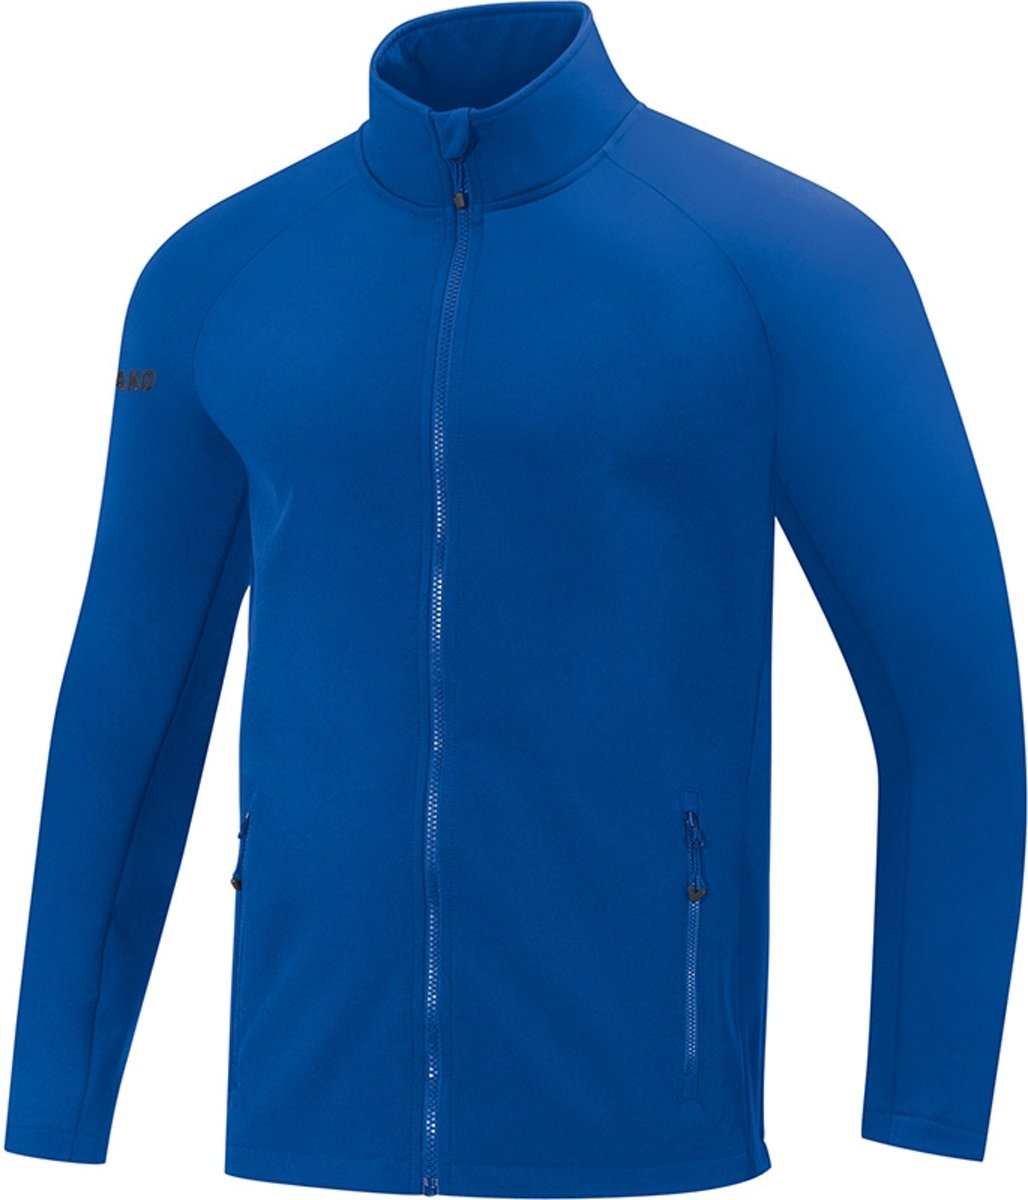 Jako Team Dames Softshell Jas - Softshelljassen  - blauw - 36